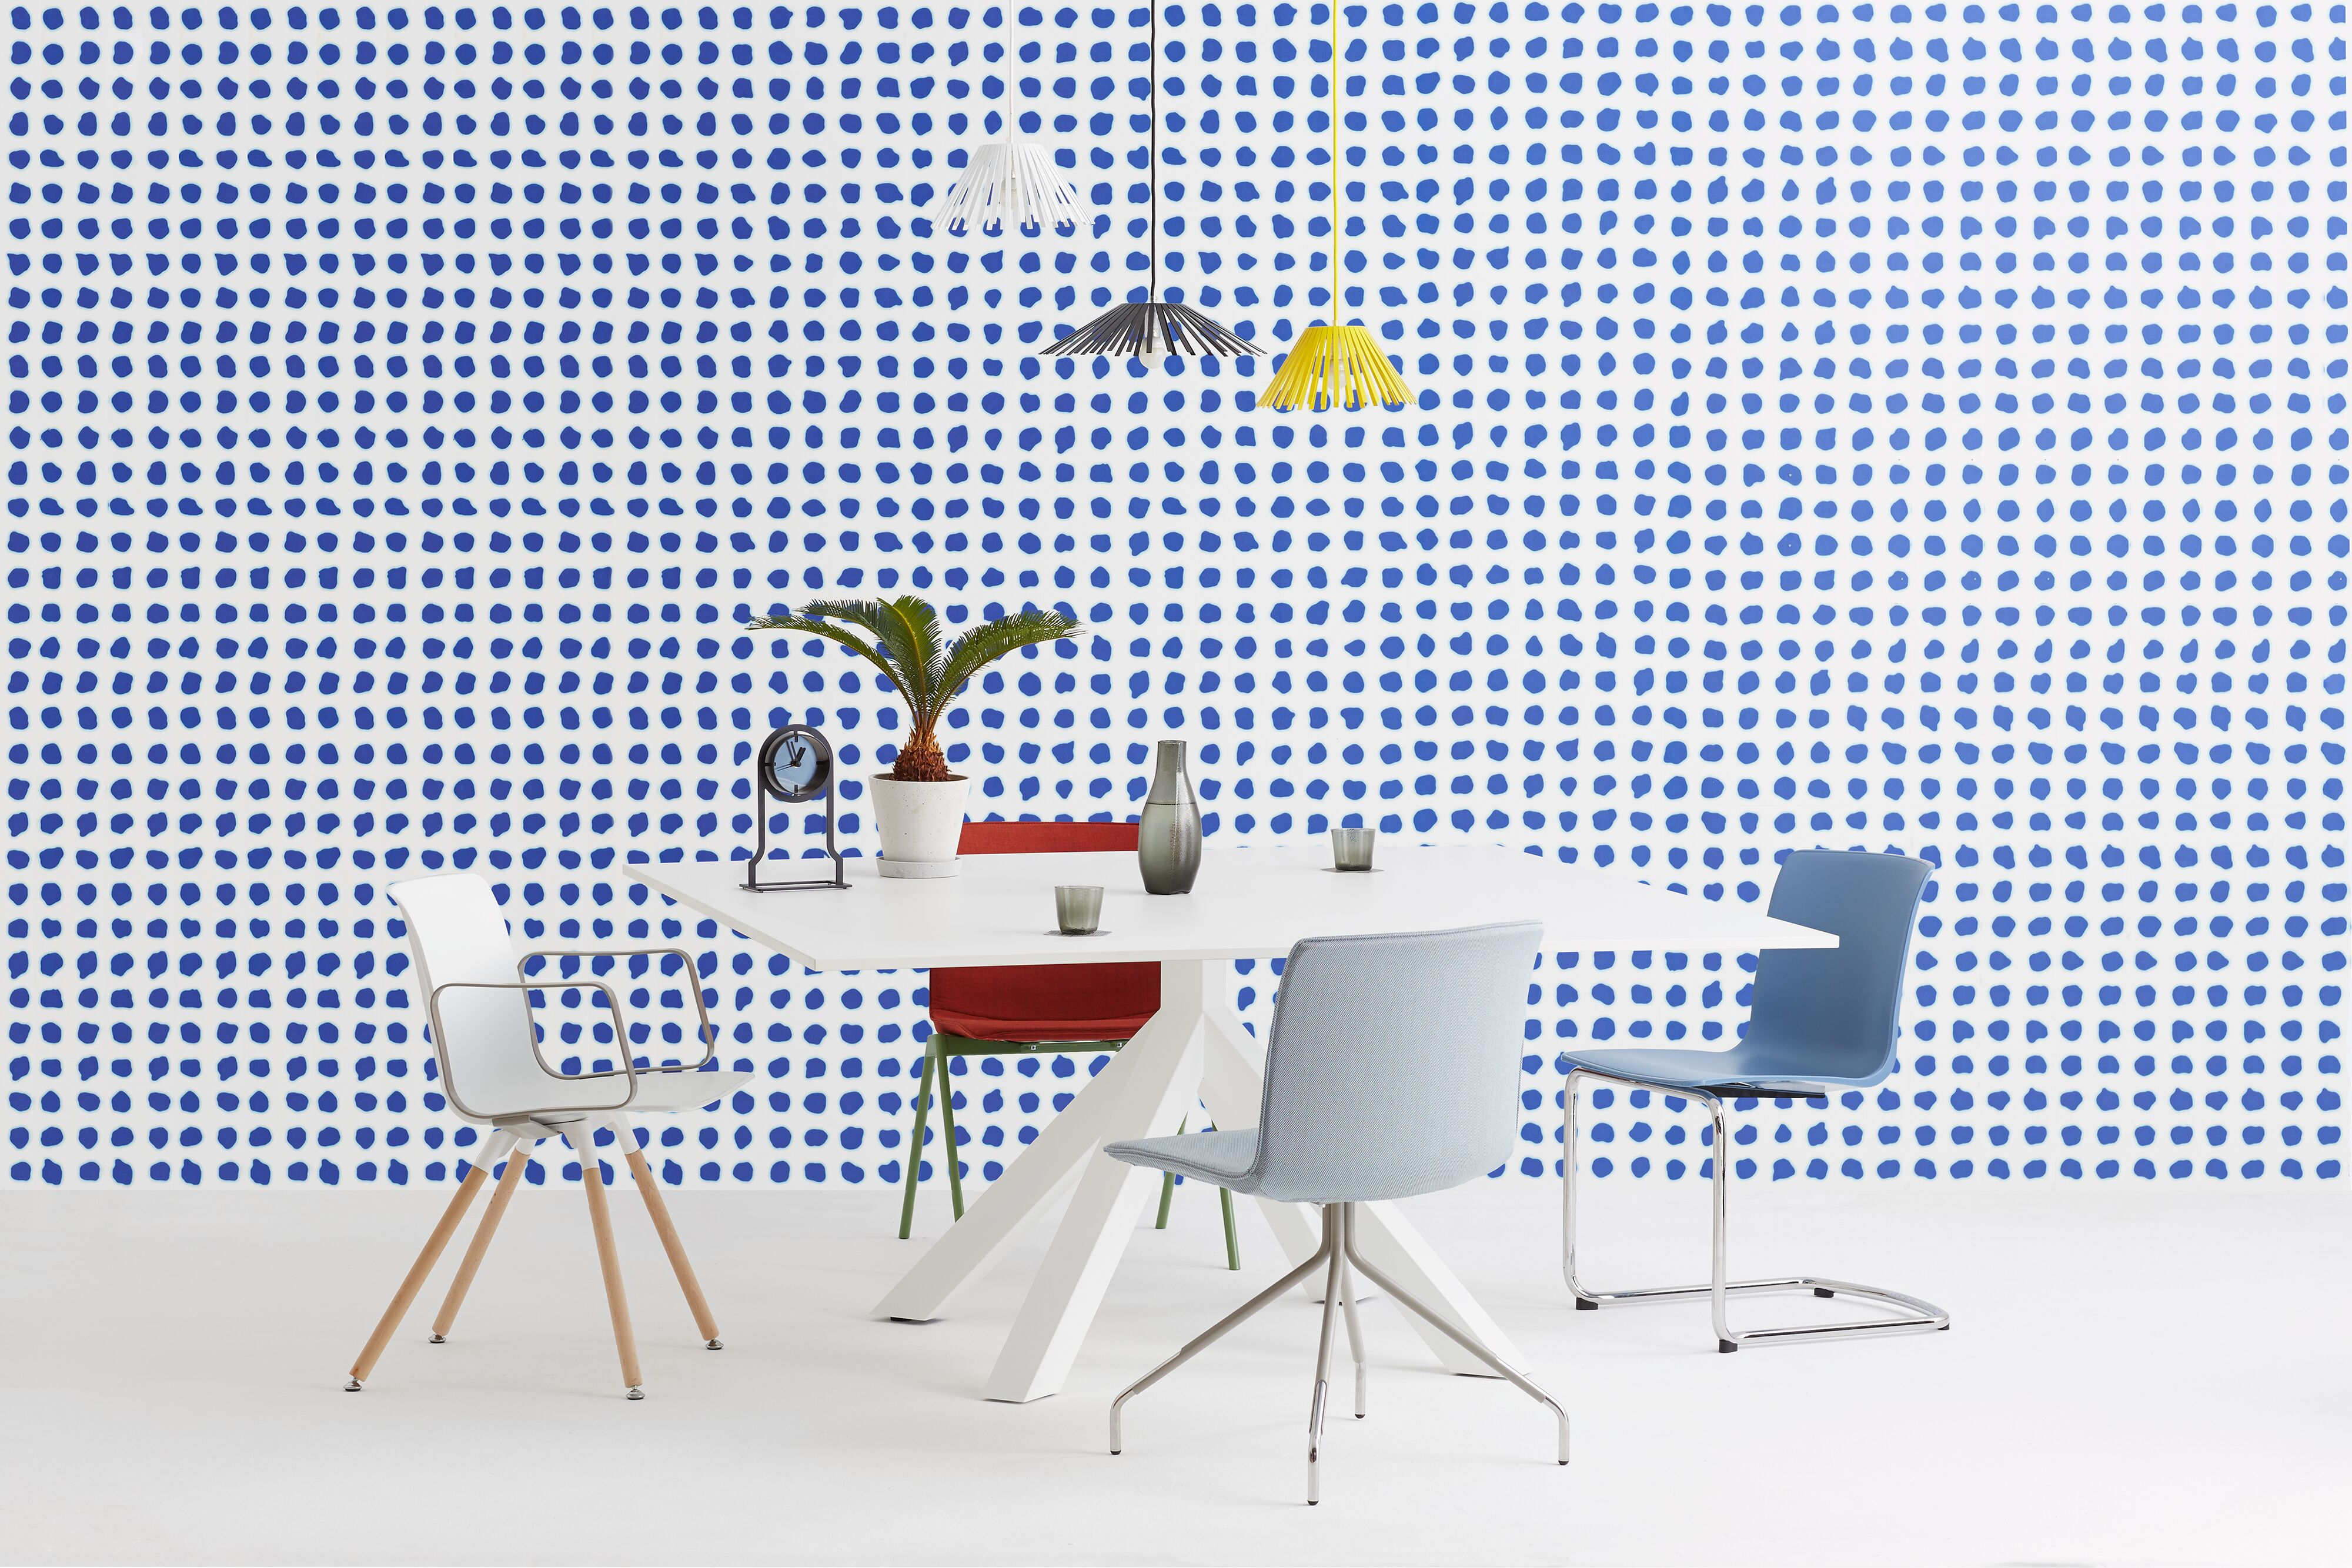 Gispen Dukdalf table with white frame and white tabletop with Nomi Chairs and Ray pendant lamps and Outline clock in front of blue dotted background front view